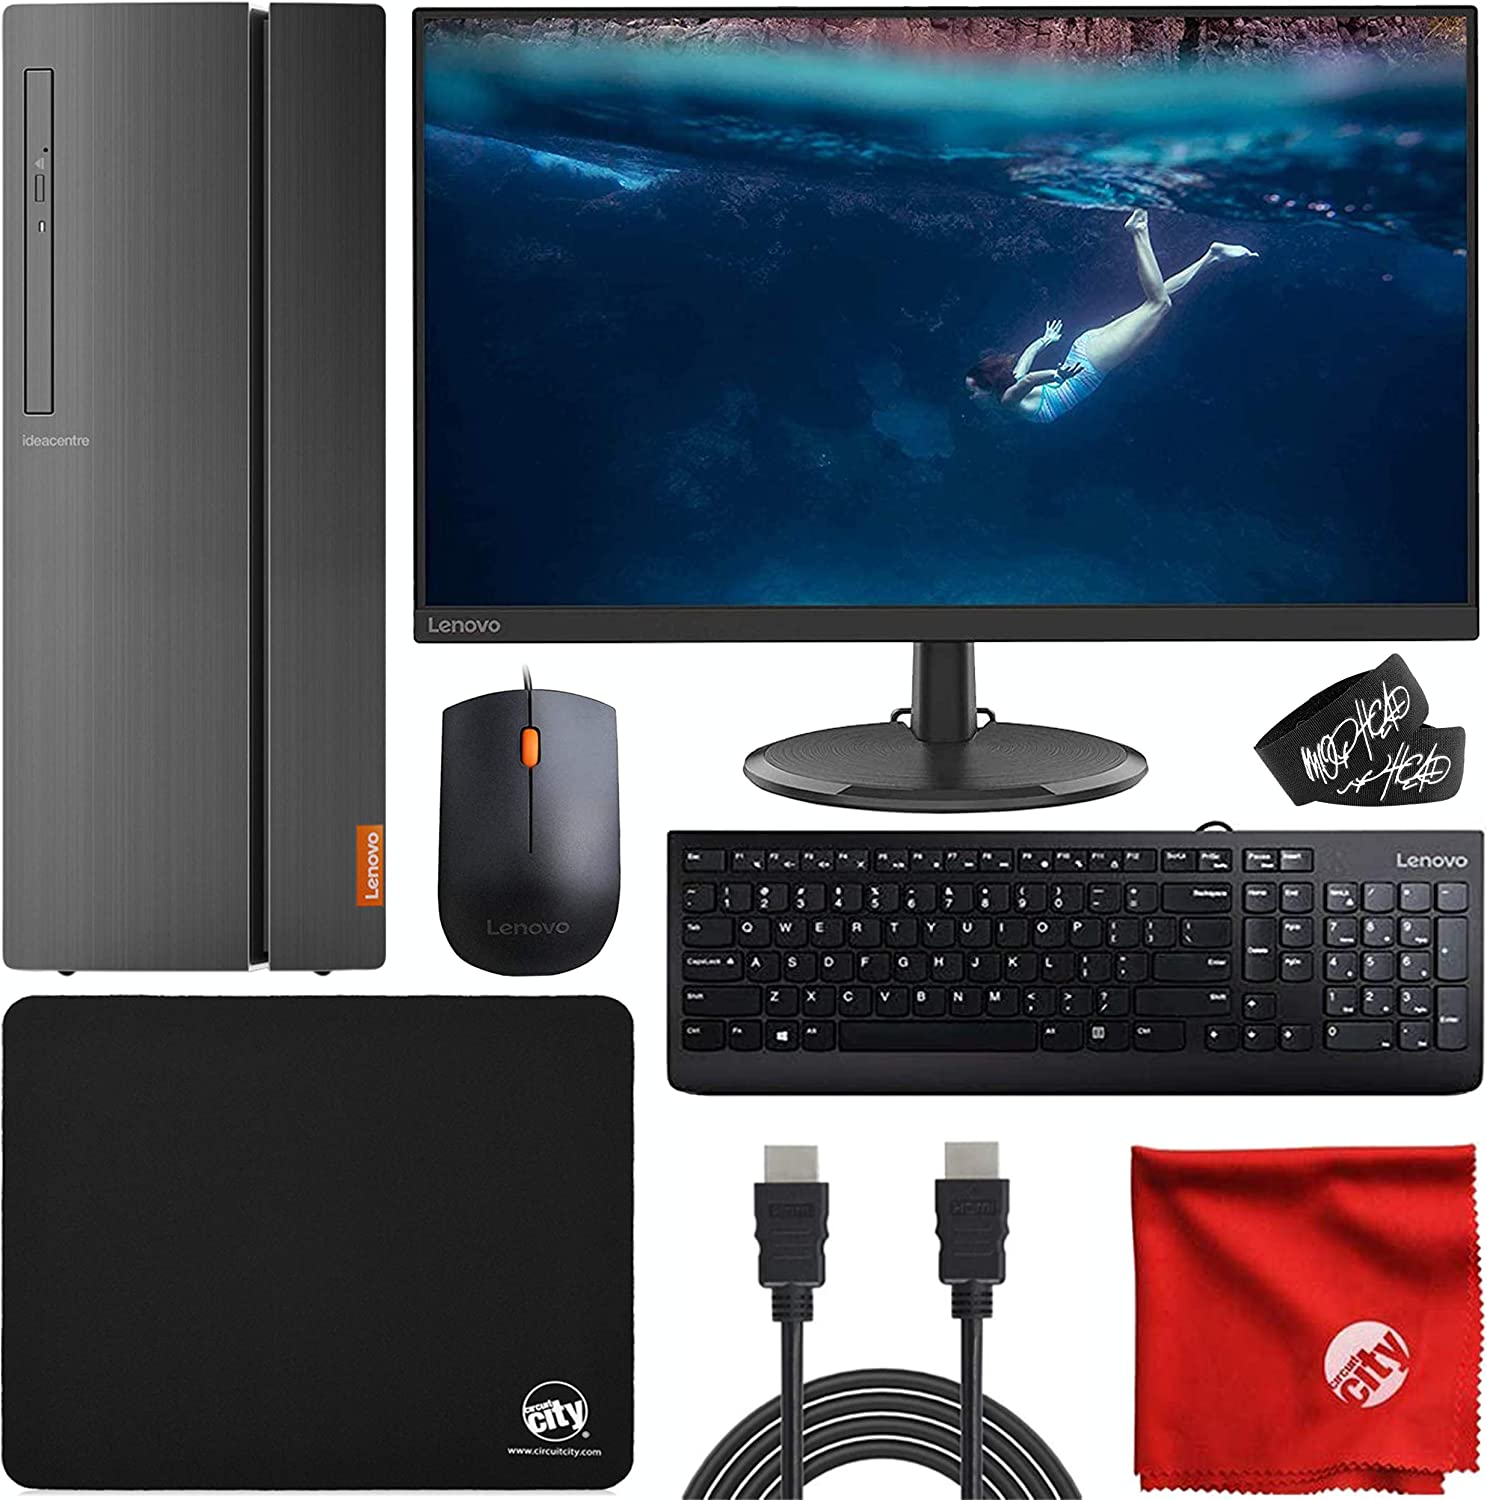 "Lenovo 510A Desktop (AMD Ryzen 3 3200G 3.6GHz, 8GB RAM, Win 10 Pro 64-Bit, 256GB SSD, DVD-RW, Radeon Vega 8) Computer Bundle with Lenovo 27"" IPS 1080p WLED Monitor, Mouse Pad, HDMI Cable, Cable Ties"